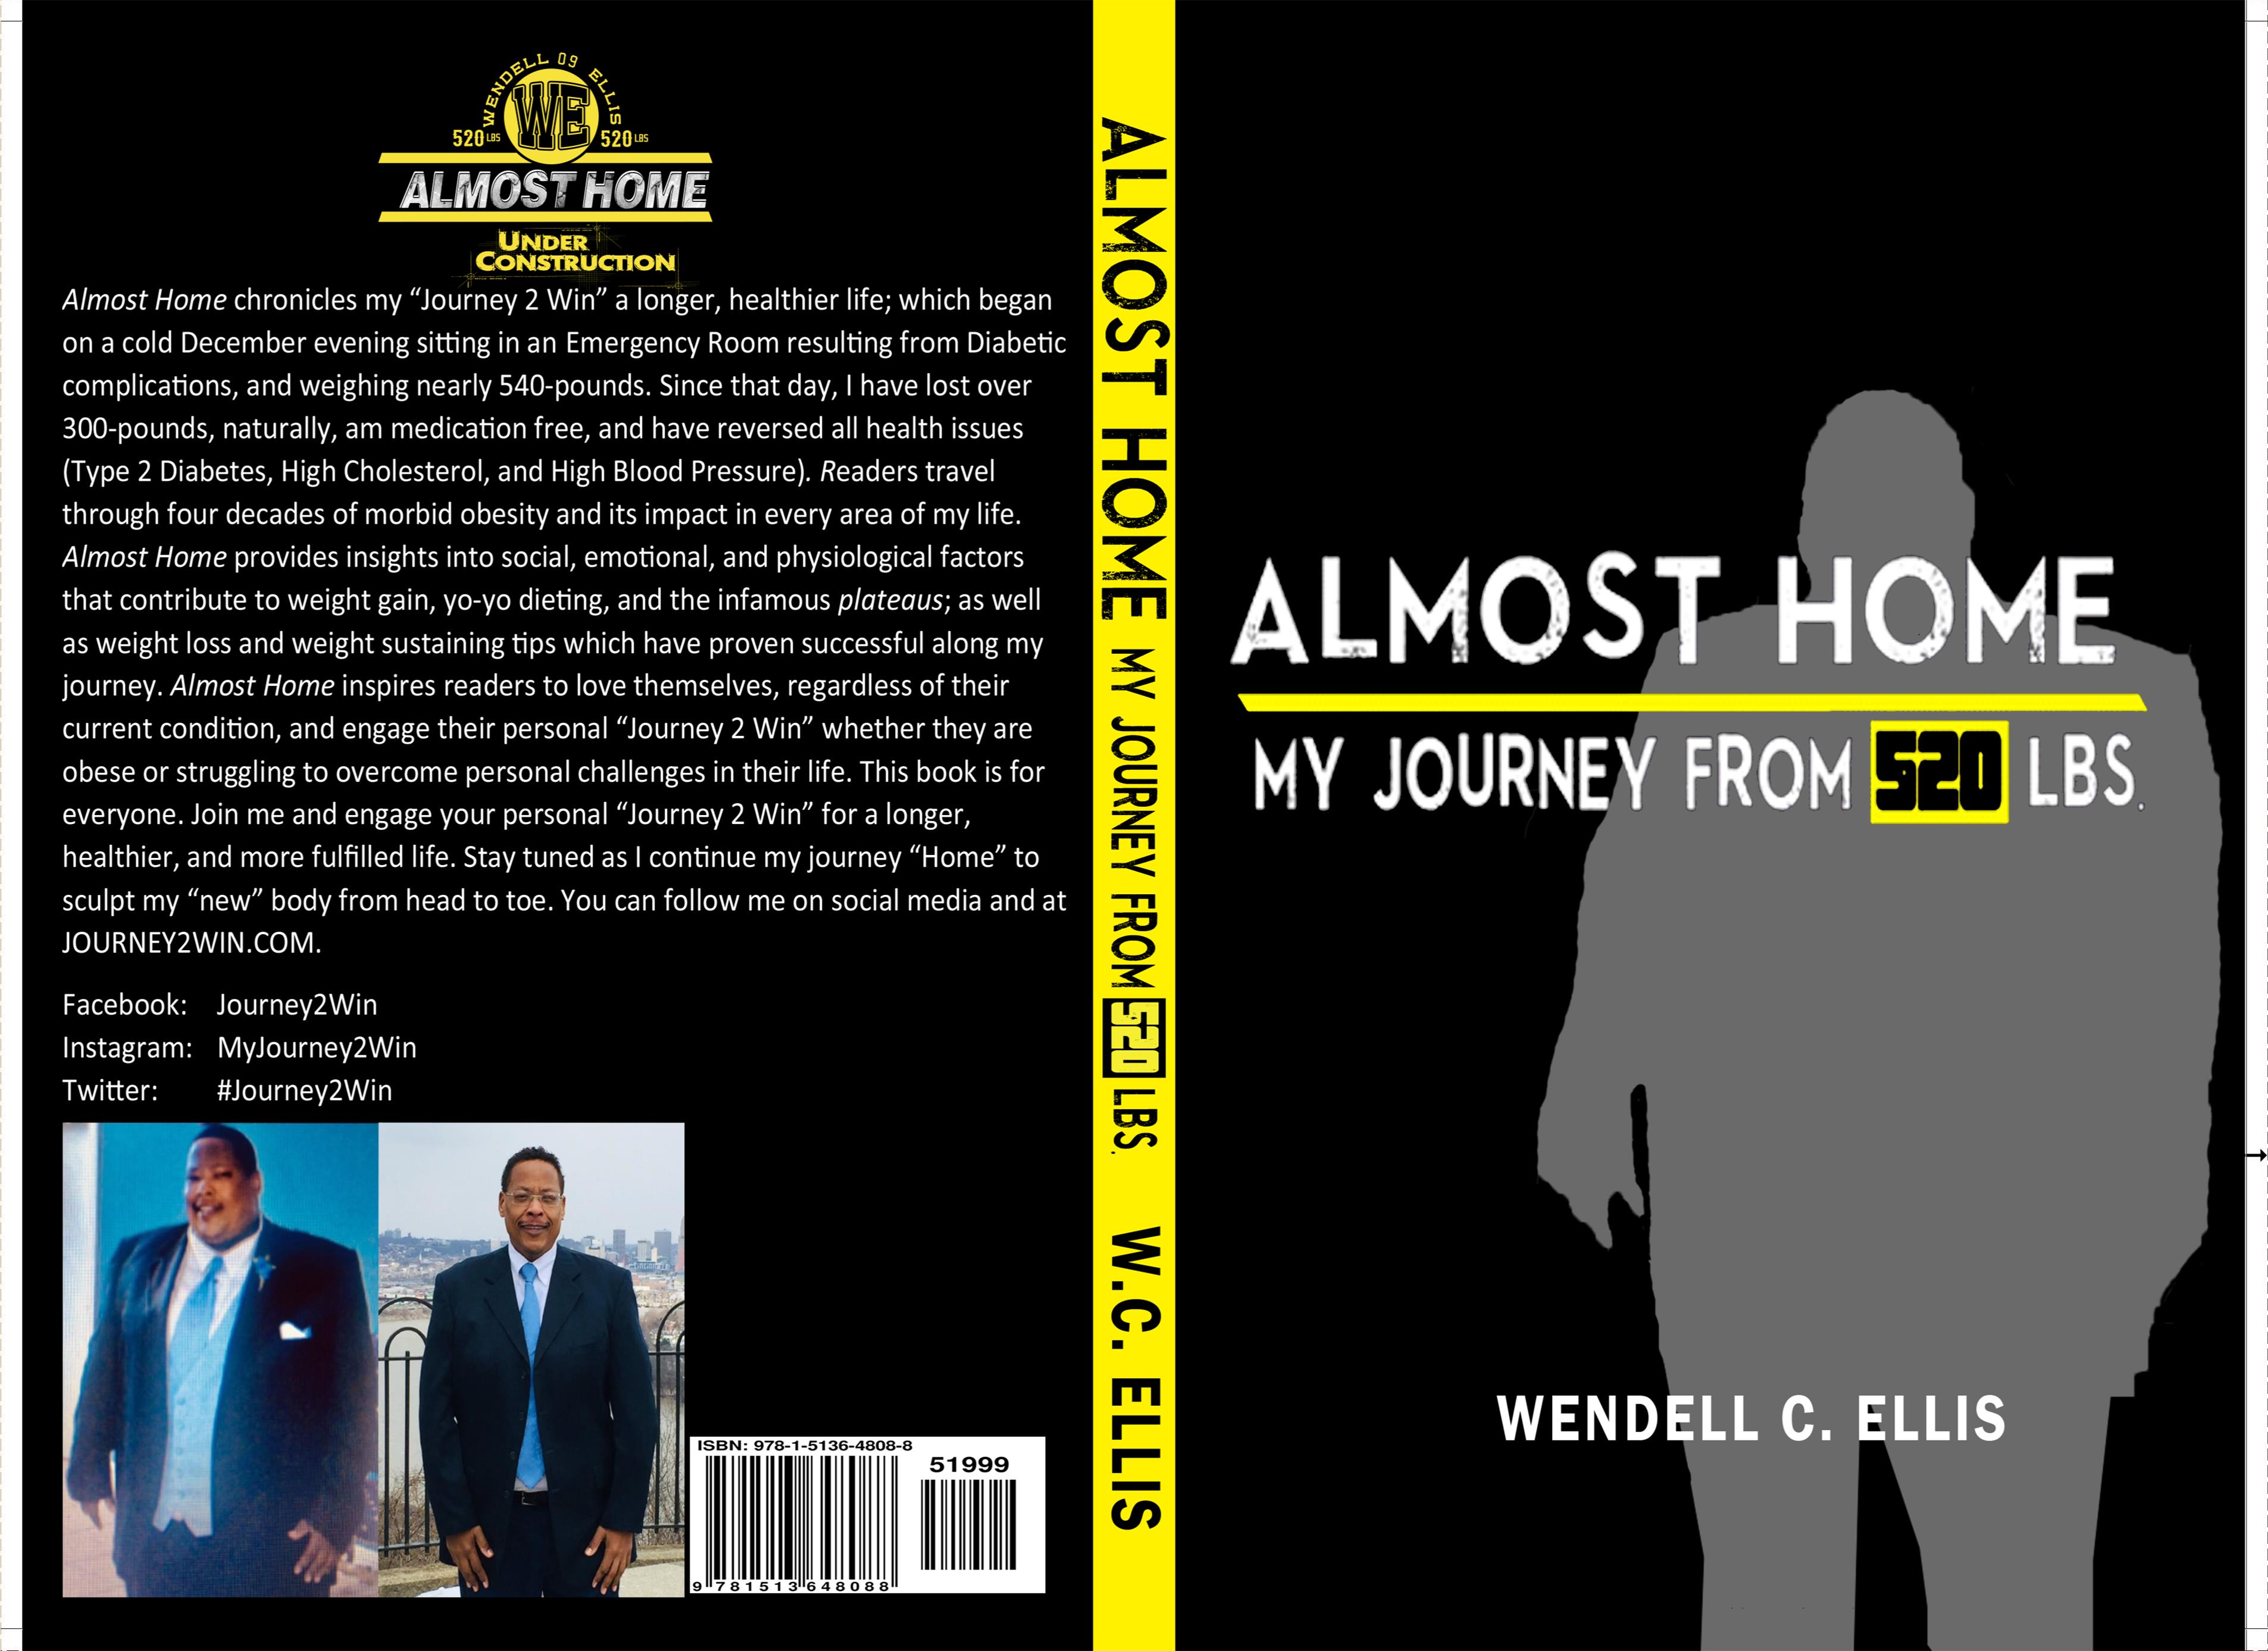 Almost Home My Journey From 520 Lbs cover image